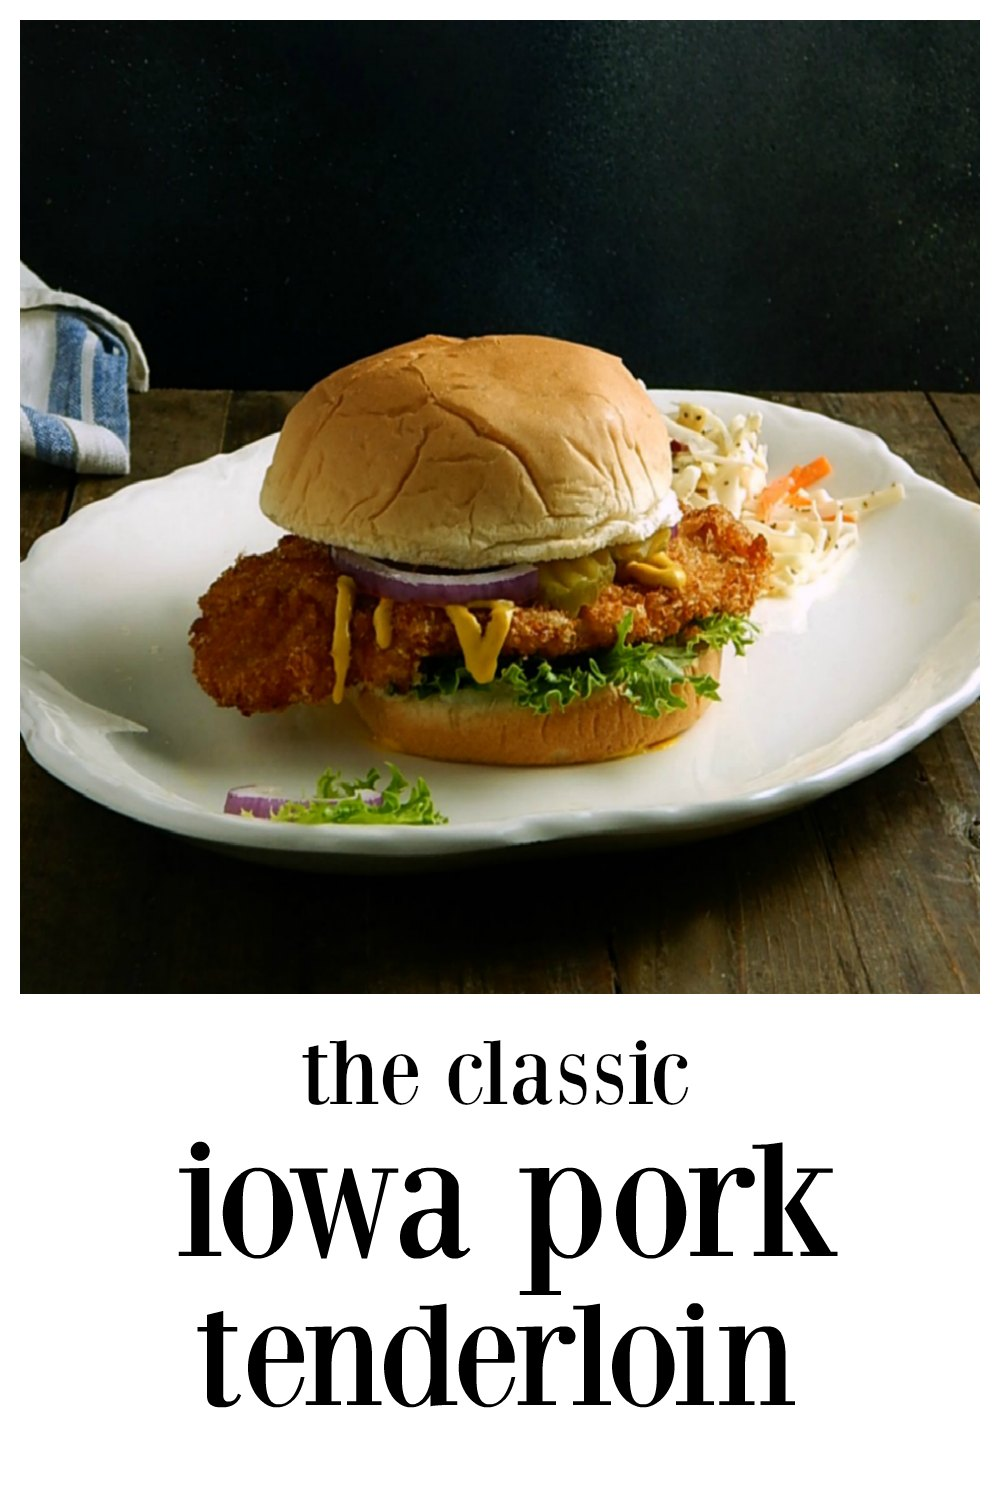 This is the classic Iowa Pork Tenderloin Sandwich, sometimes called the Breaded Pork Tenderloin or BPT for short! Done well it's sublime!! #PorkTenderloin #IowaPorkTenderloin #BPTSandwich